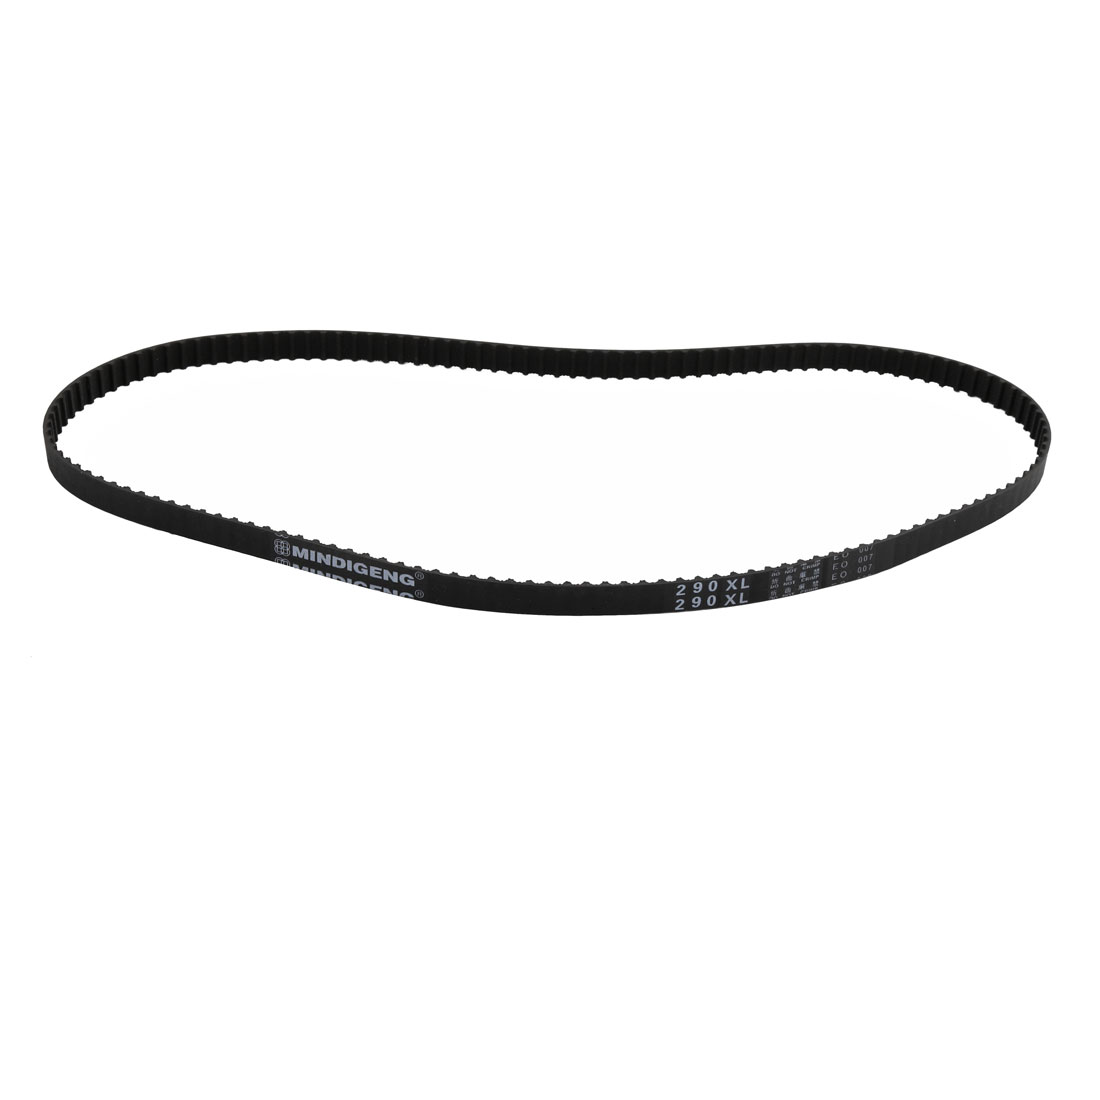 290XL 145 Teeth 10mm Width 5.08mm Pitch Stepper Motor Rubber Timing Belt Black